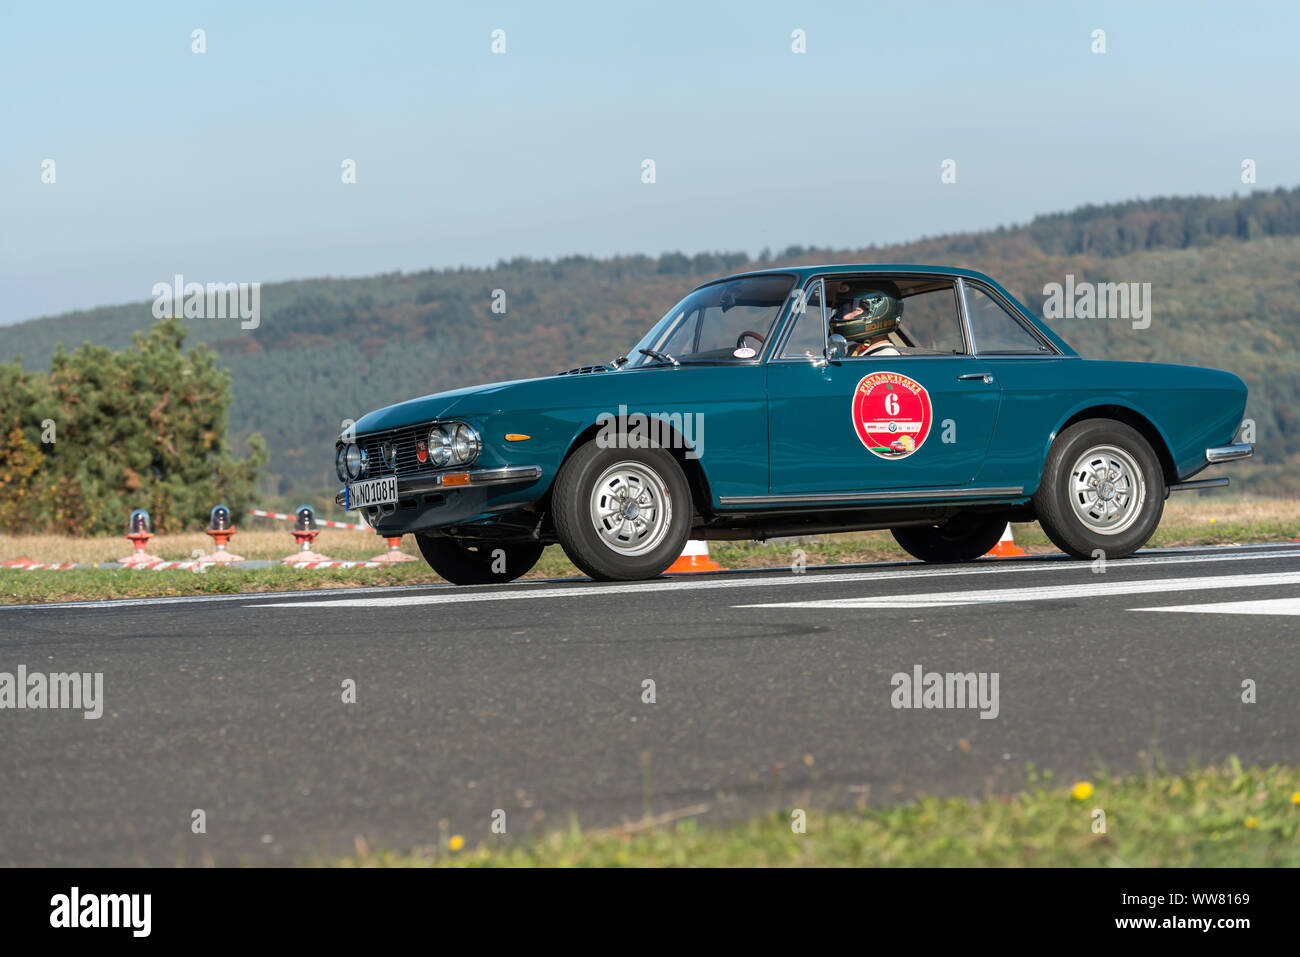 Michelstadt, Hesse, Germany, Lancia Fulvia 1,3S, 1300 ccm, 90 HP, year of manufacture 1972 on the event Pista & Piloti Stock Photo